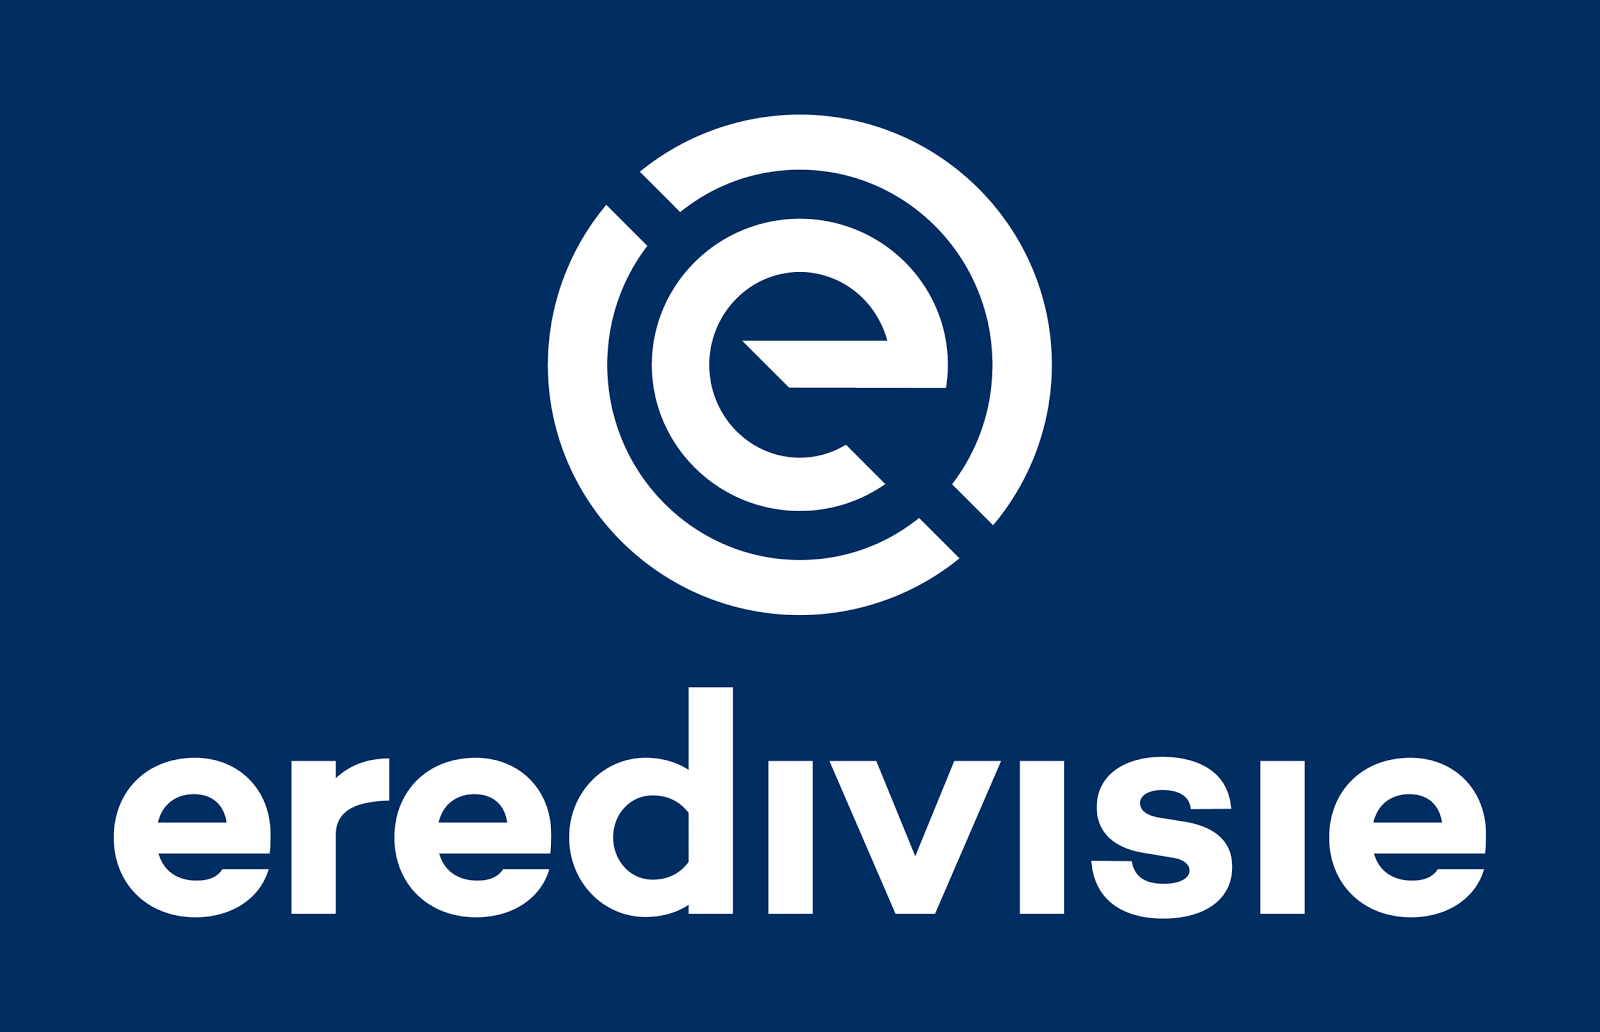 all-new-eredivisie-logo+%25283%2529.png